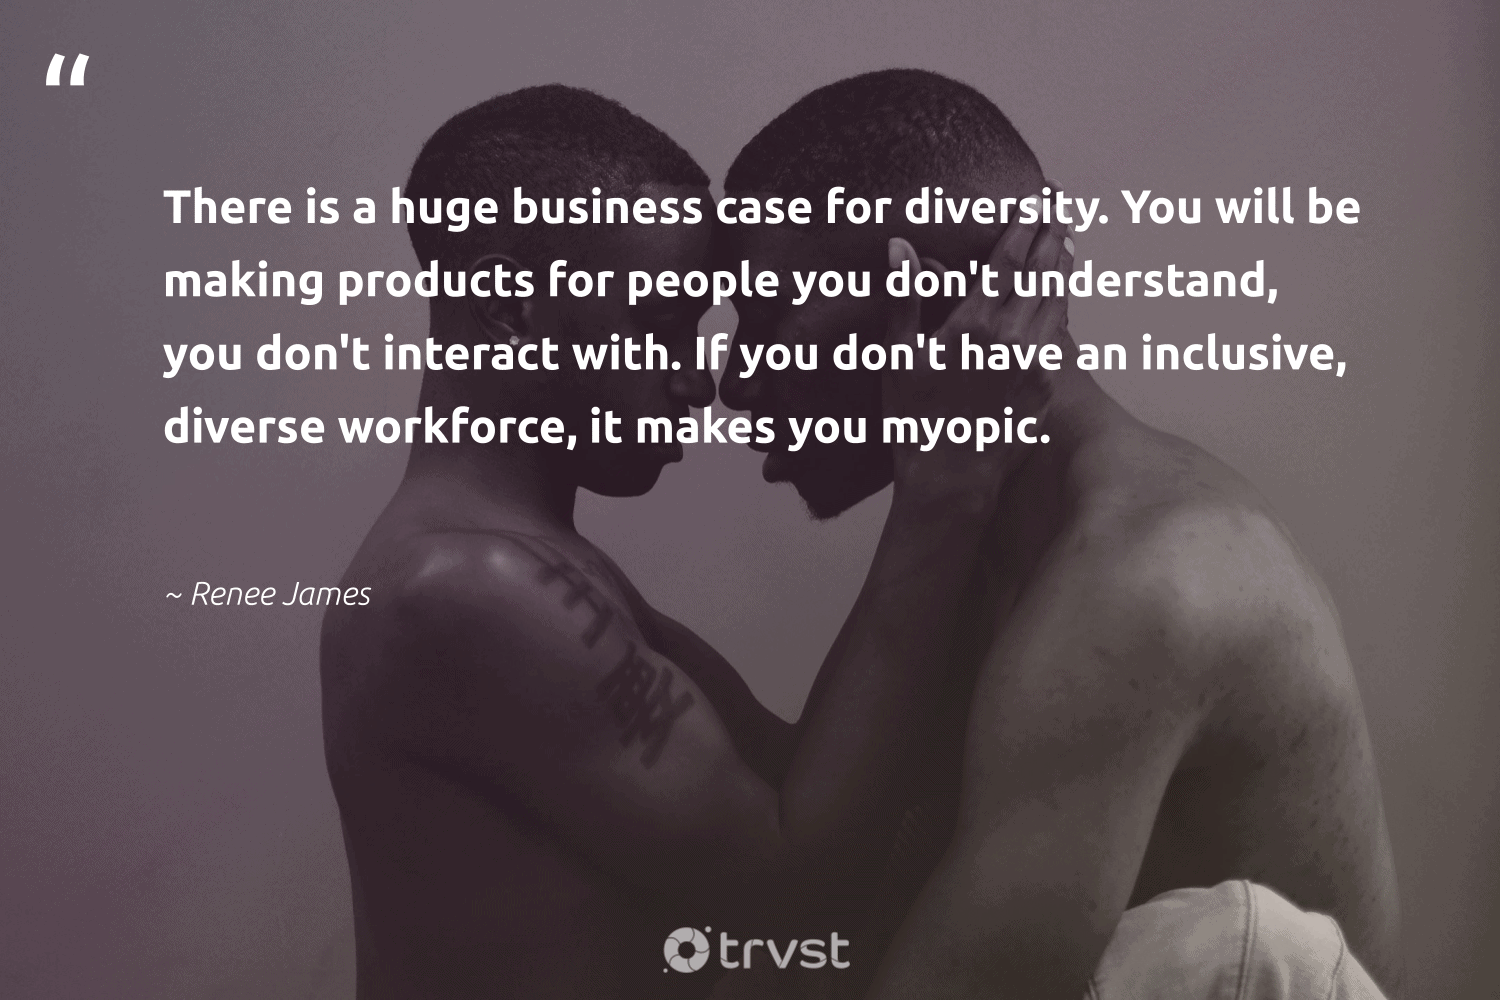 """There is a huge business case for diversity. You will be making products for people you don't understand, you don't interact with. If you don't have an inclusive, diverse workforce, it makes you myopic.""  - Renee James #trvst #quotes #diversity #representationmatters #inclusion #weareallone #makeadifference #beinspired #discrimination #socialchange #giveback #bethechange"